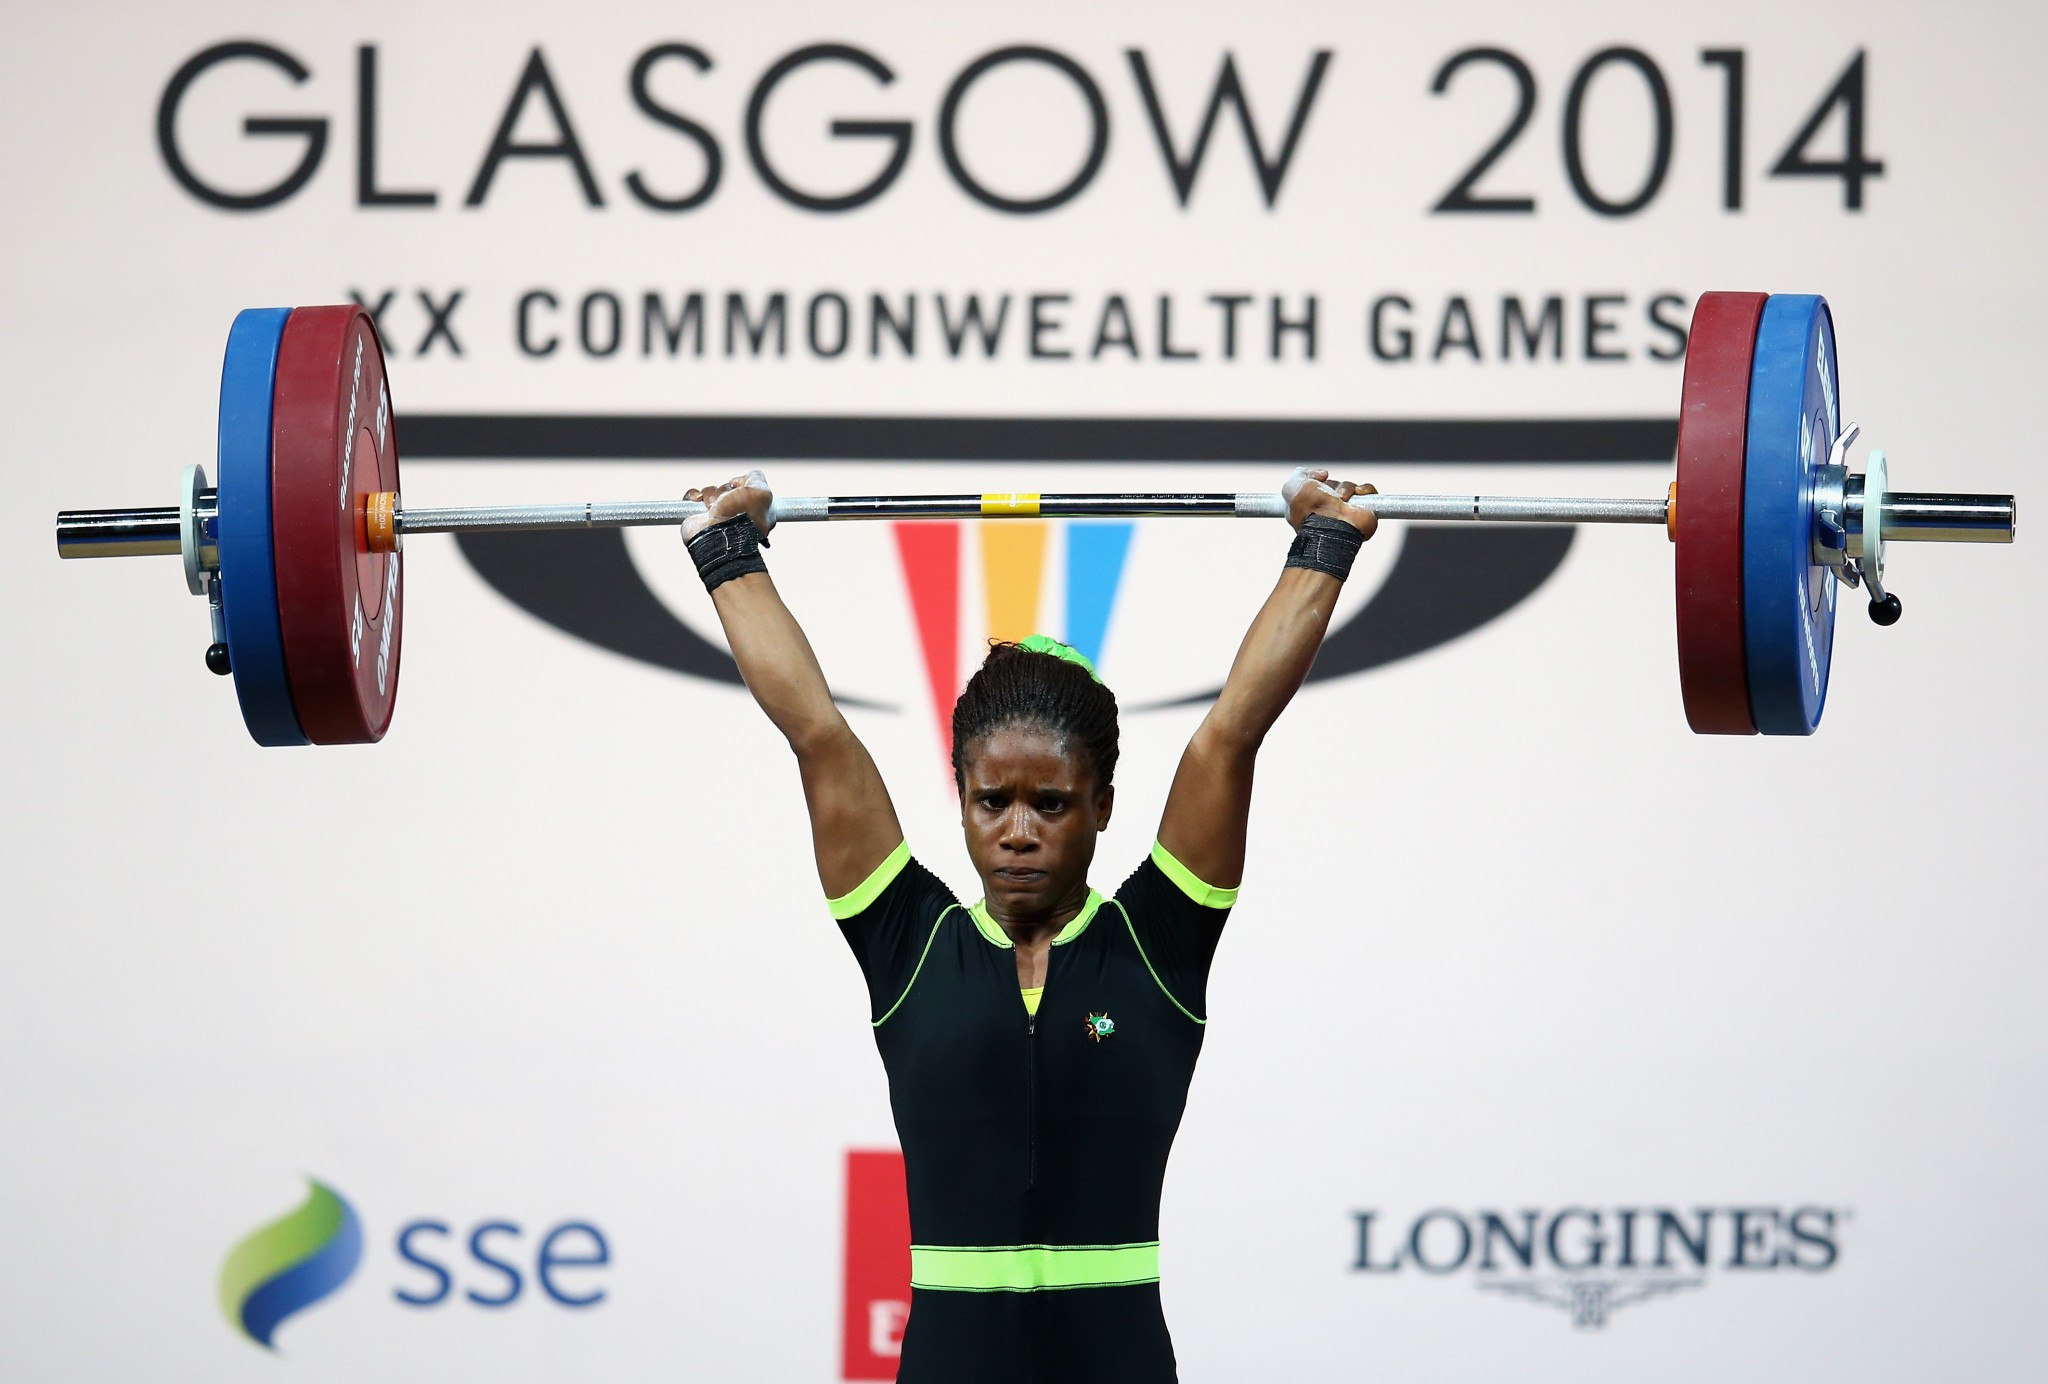 Nigerian teenage weightlifter Chika Amalaha was stripped of her Commonwealth Games gold medal at Glasgow 2014 after testing positive for banned drugs ©Getty Images